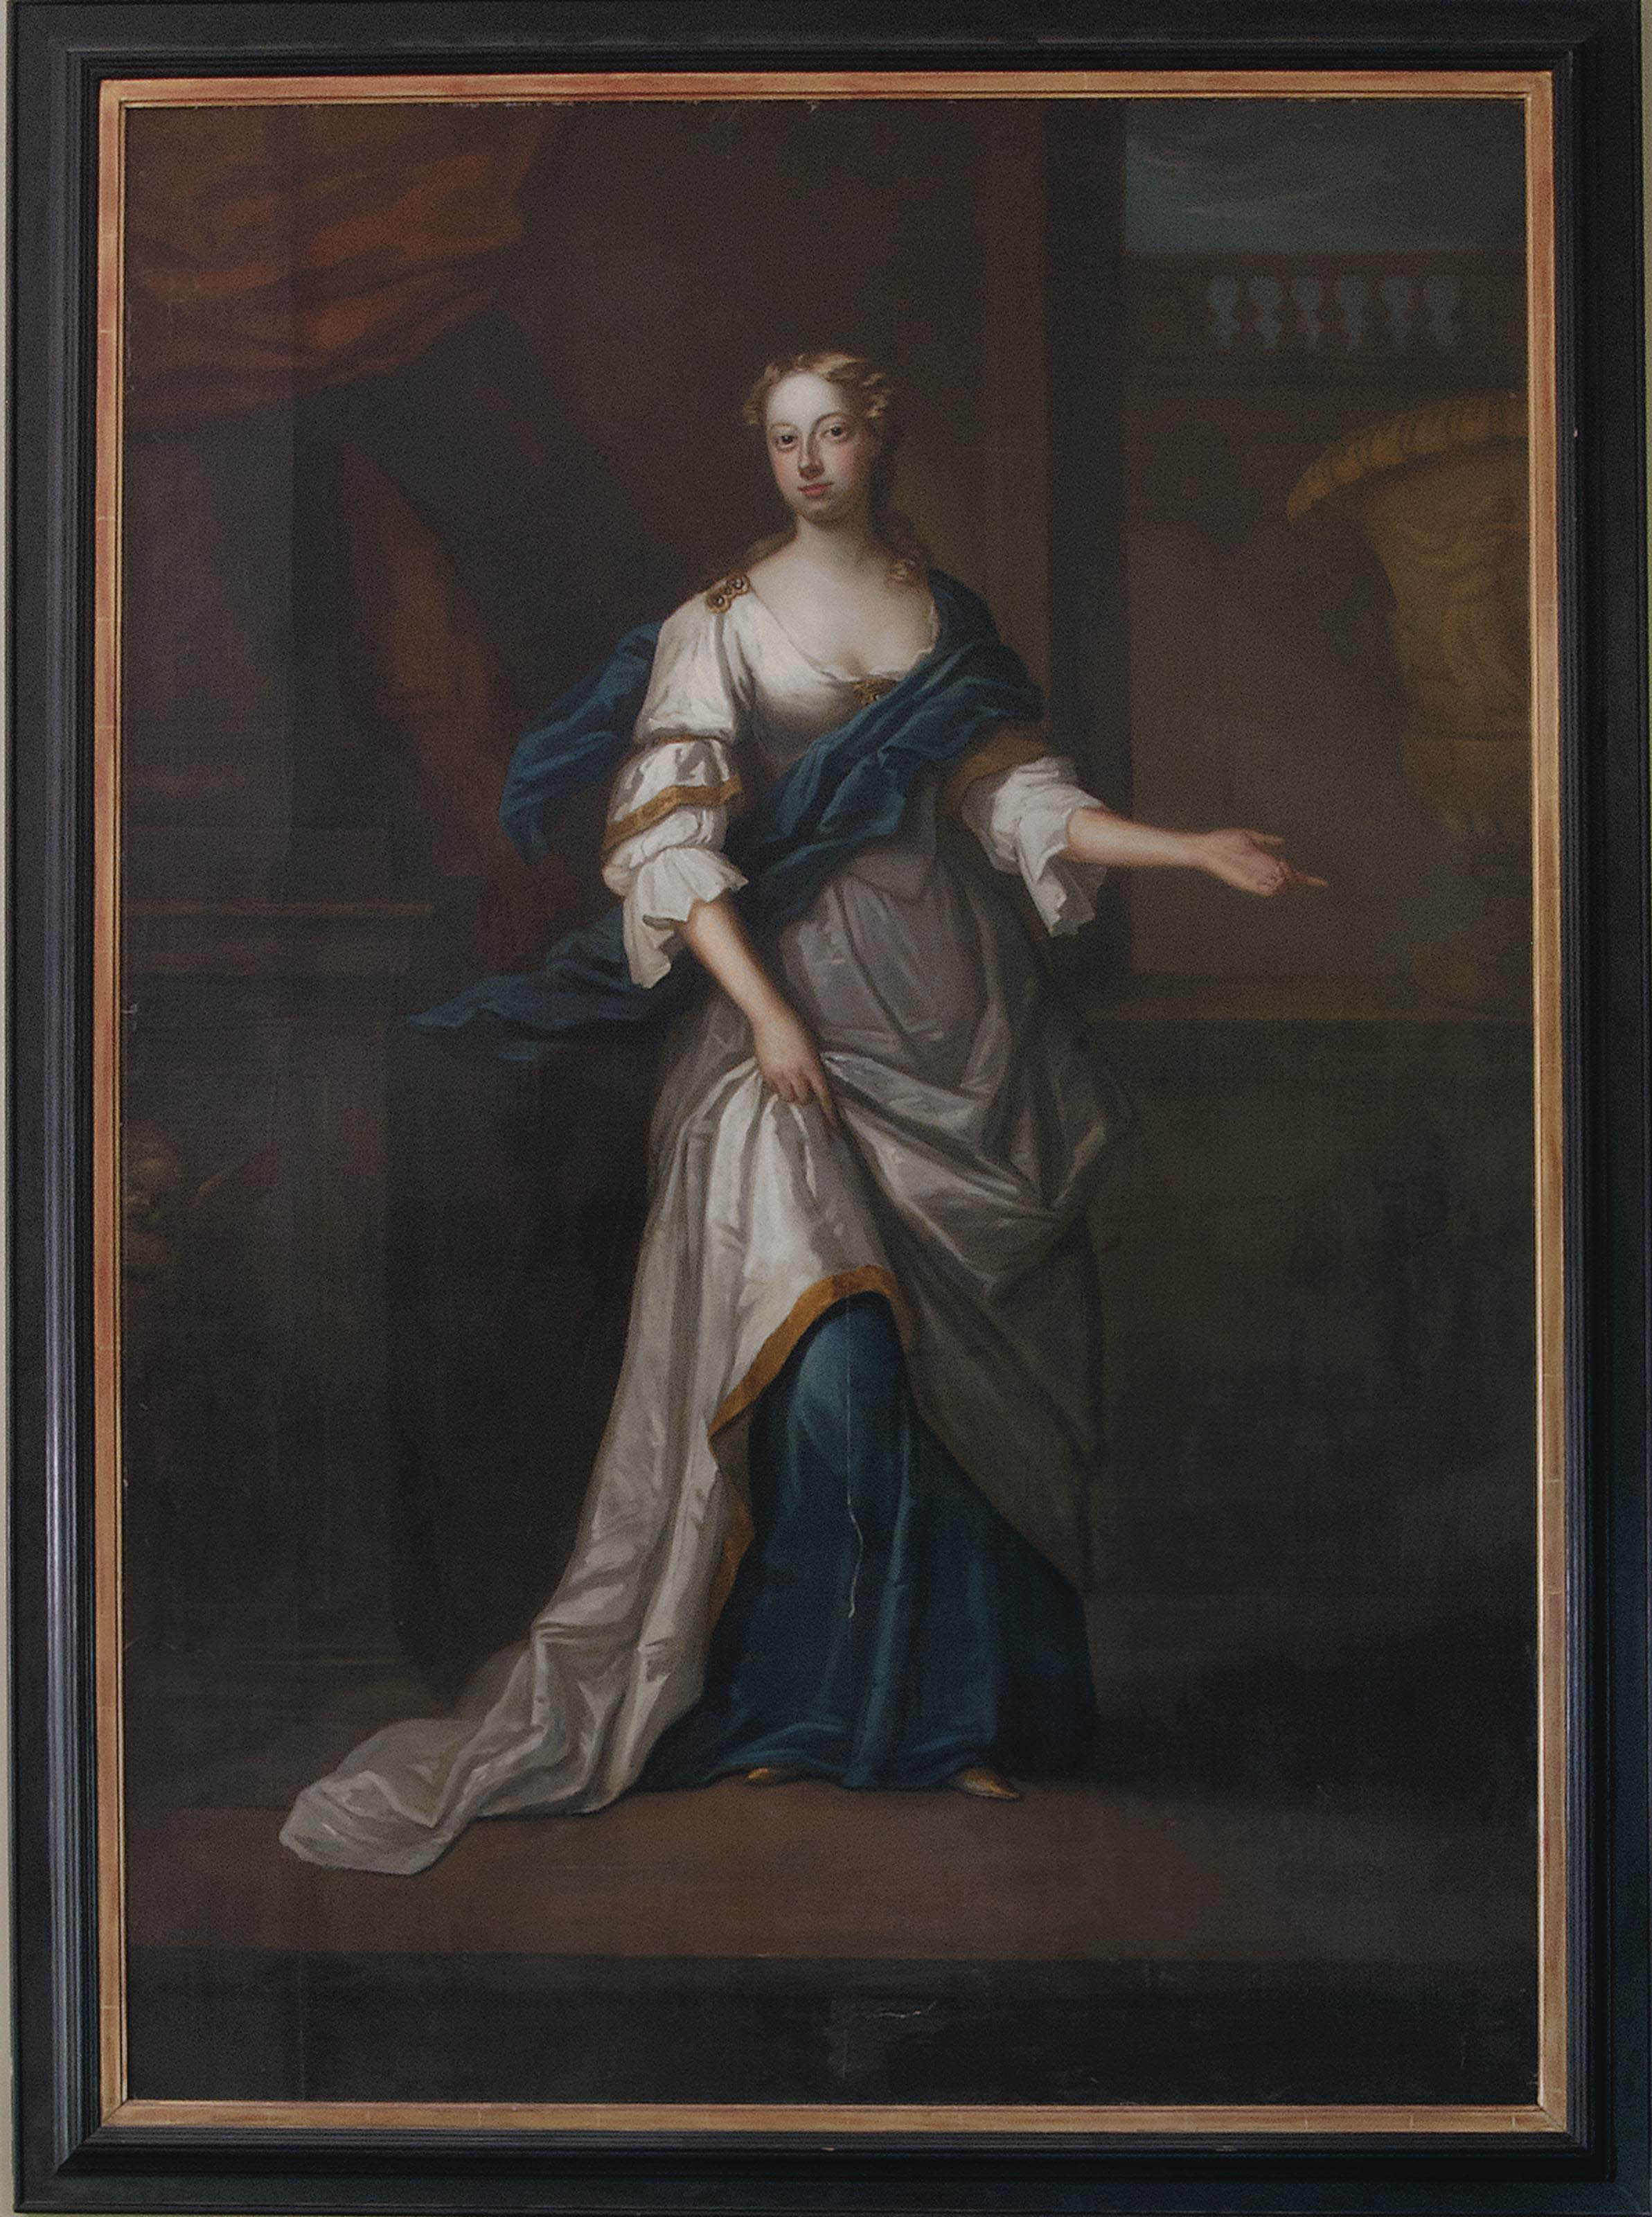 Portrait of a lady, full-length, in an oyster satin dress and blue wrap, standing beside a classical urn